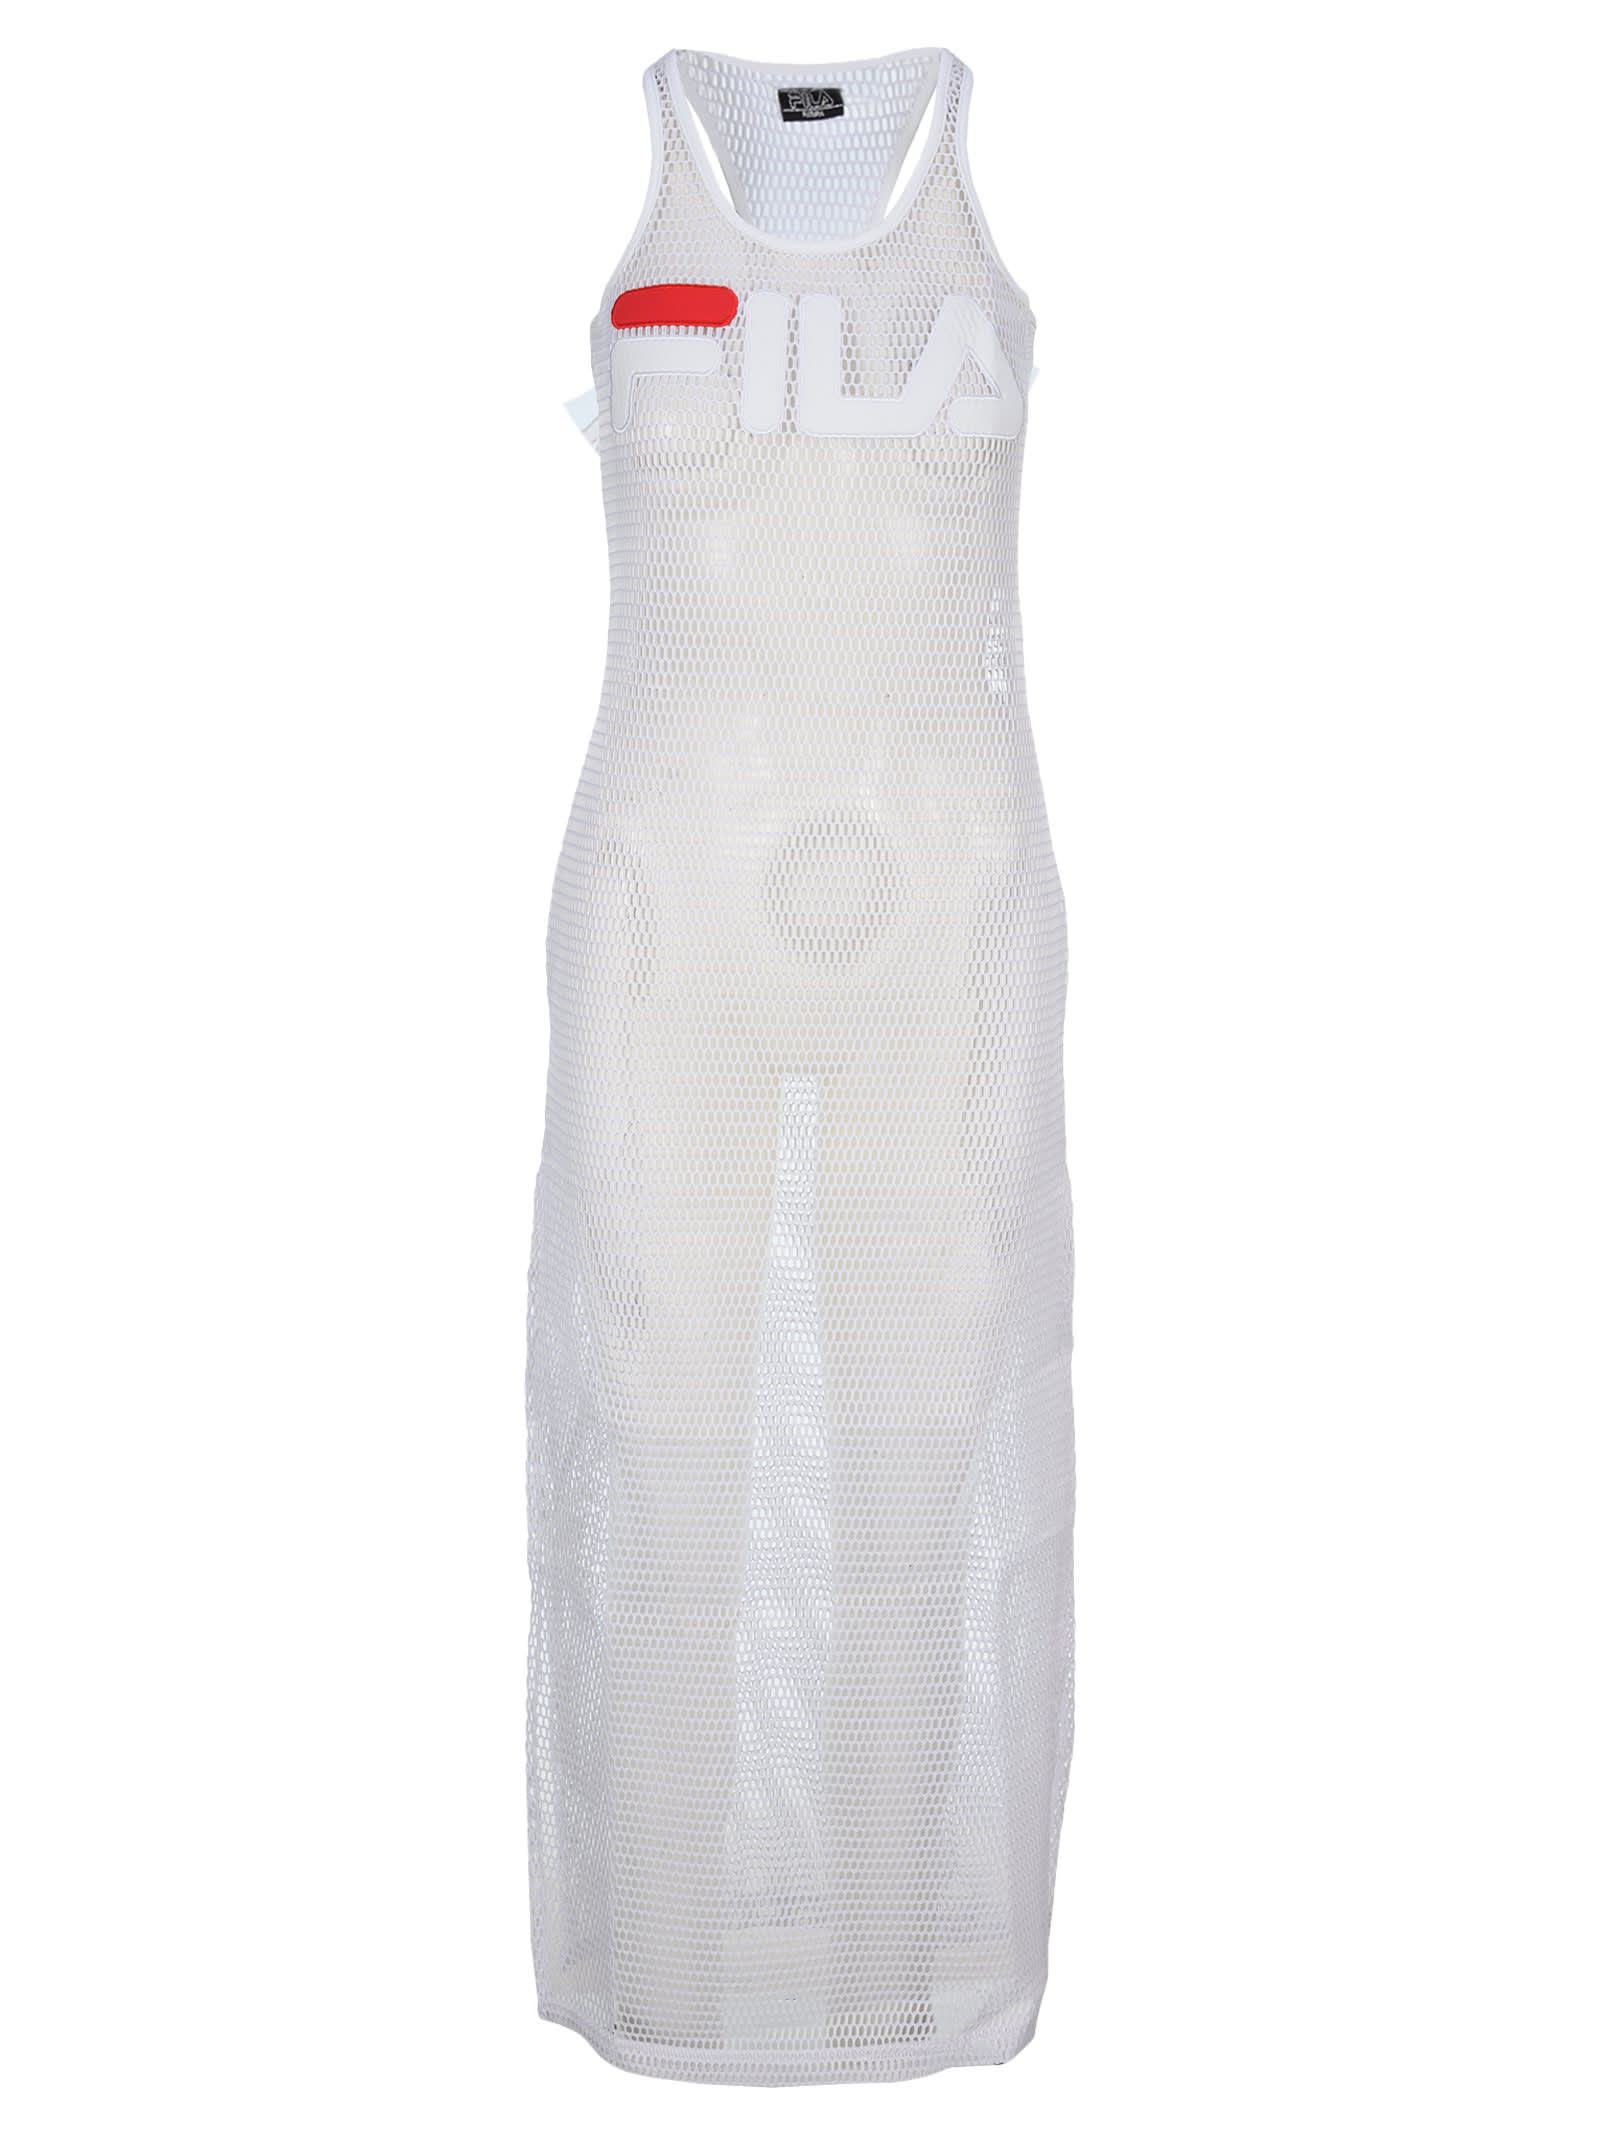 Fila Mesh Racer Back Dress